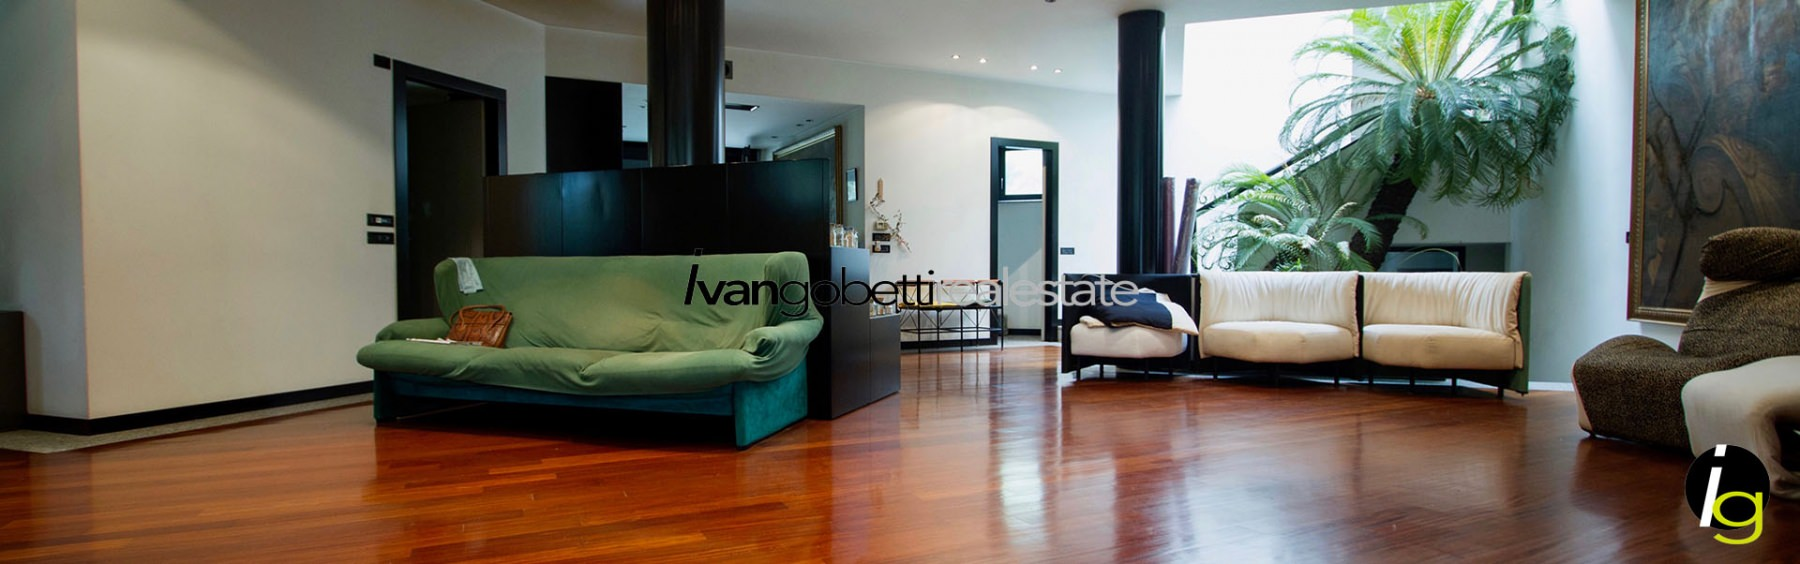 Modern design villa for Sale in Milan Legnano center